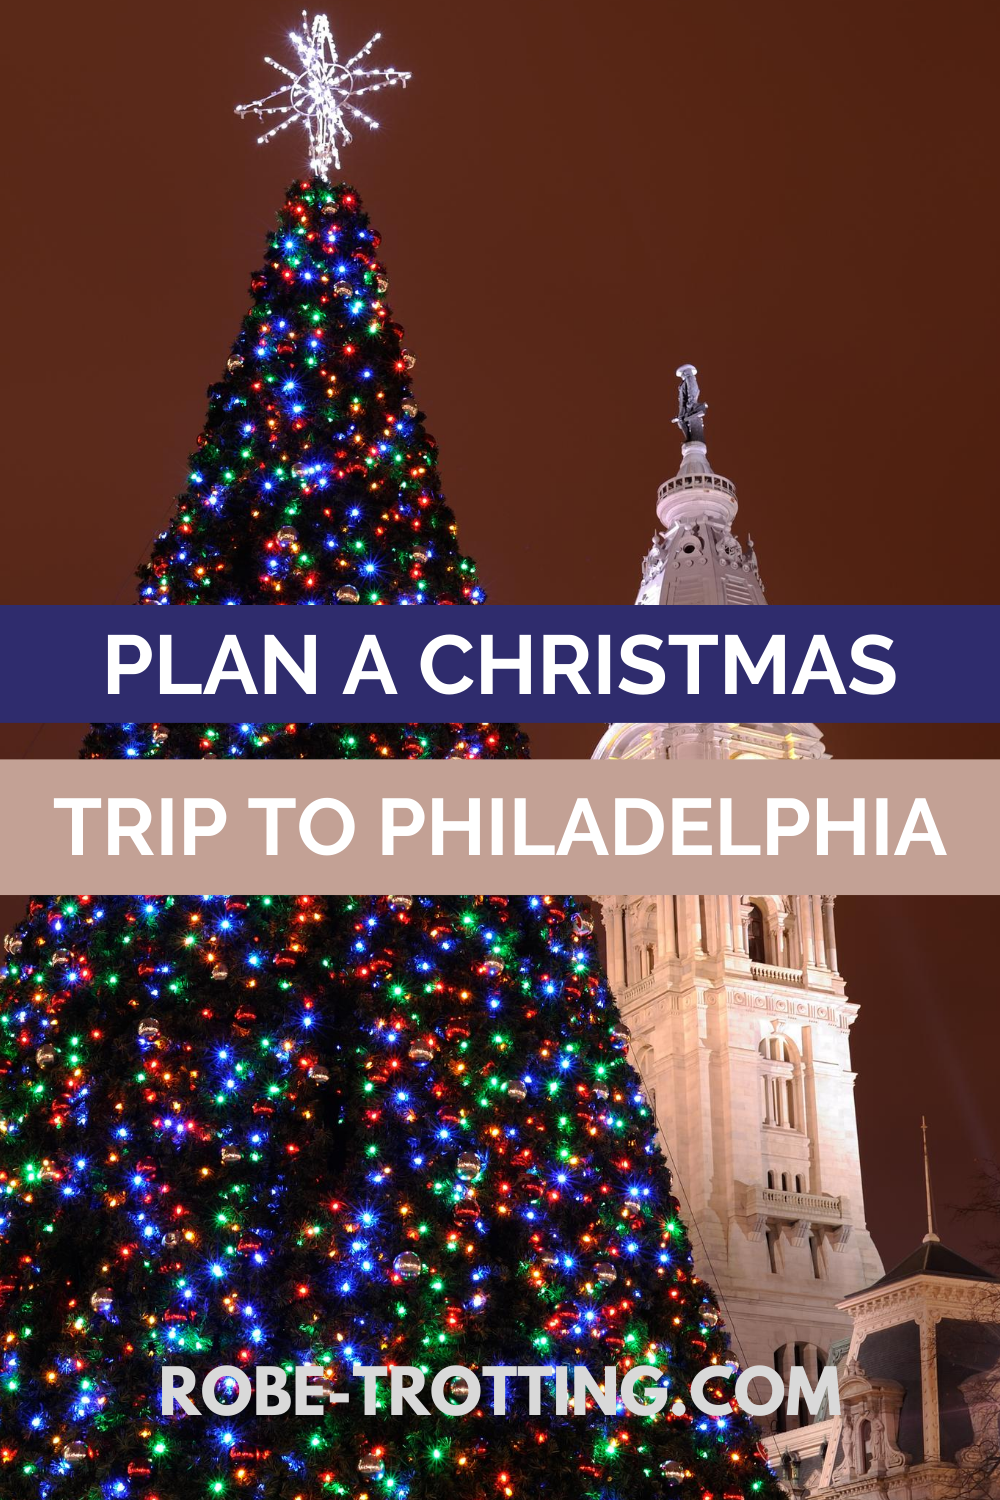 Christmas Time In Philadelphia 2020 Guide to Christmas in Philadelphia in 2020 | Christmas travel